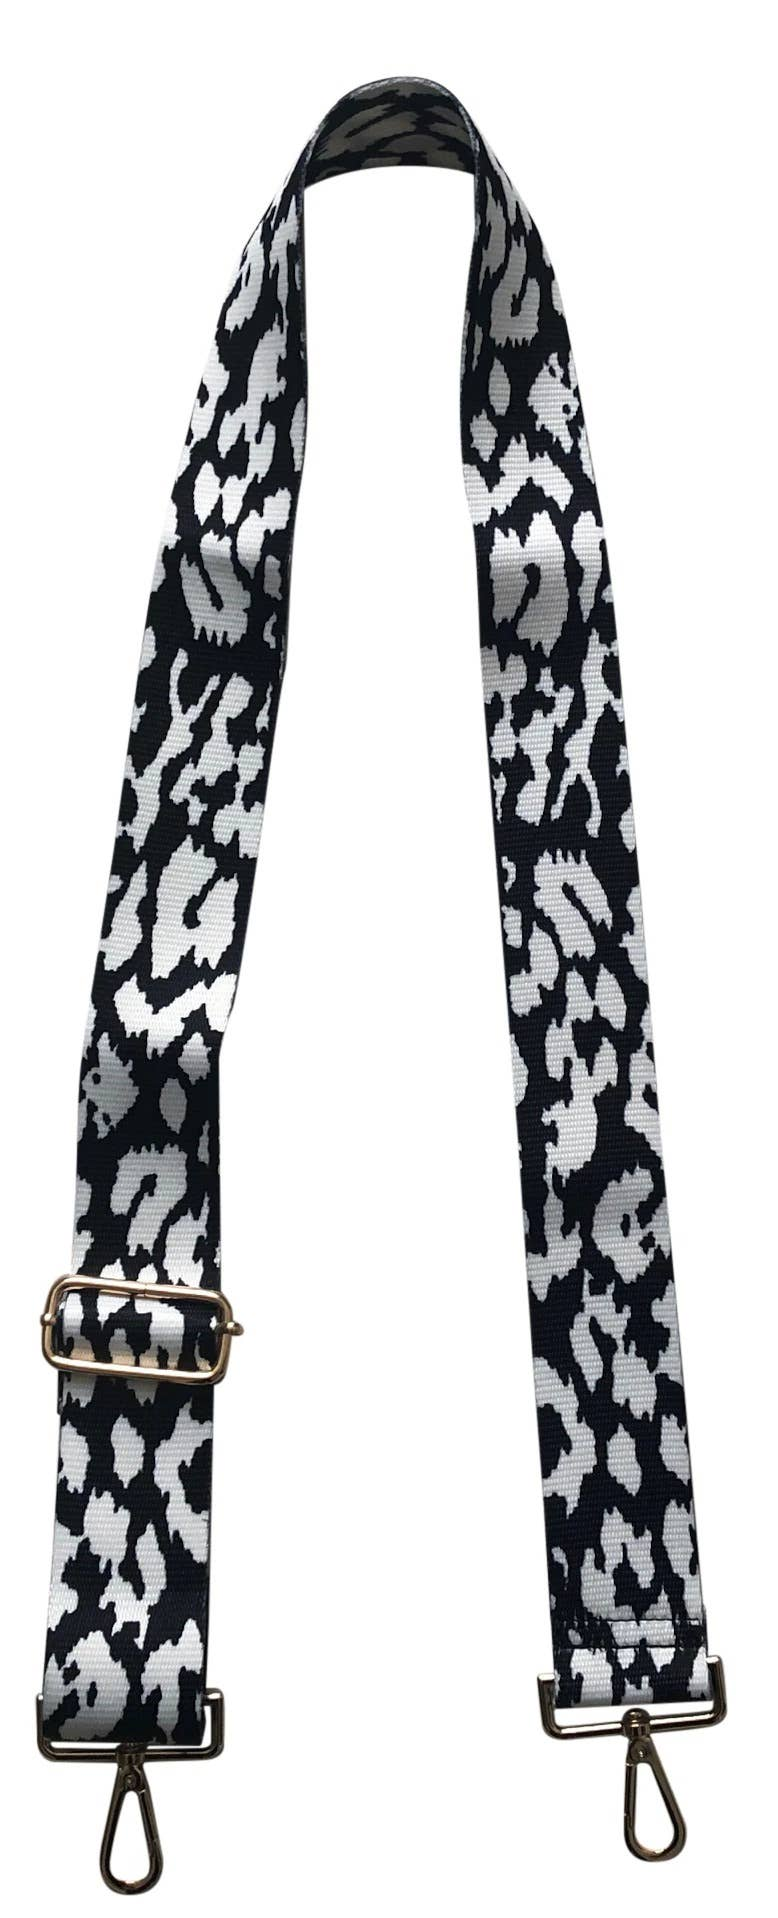 Adjustable Animal Print Bag Straps